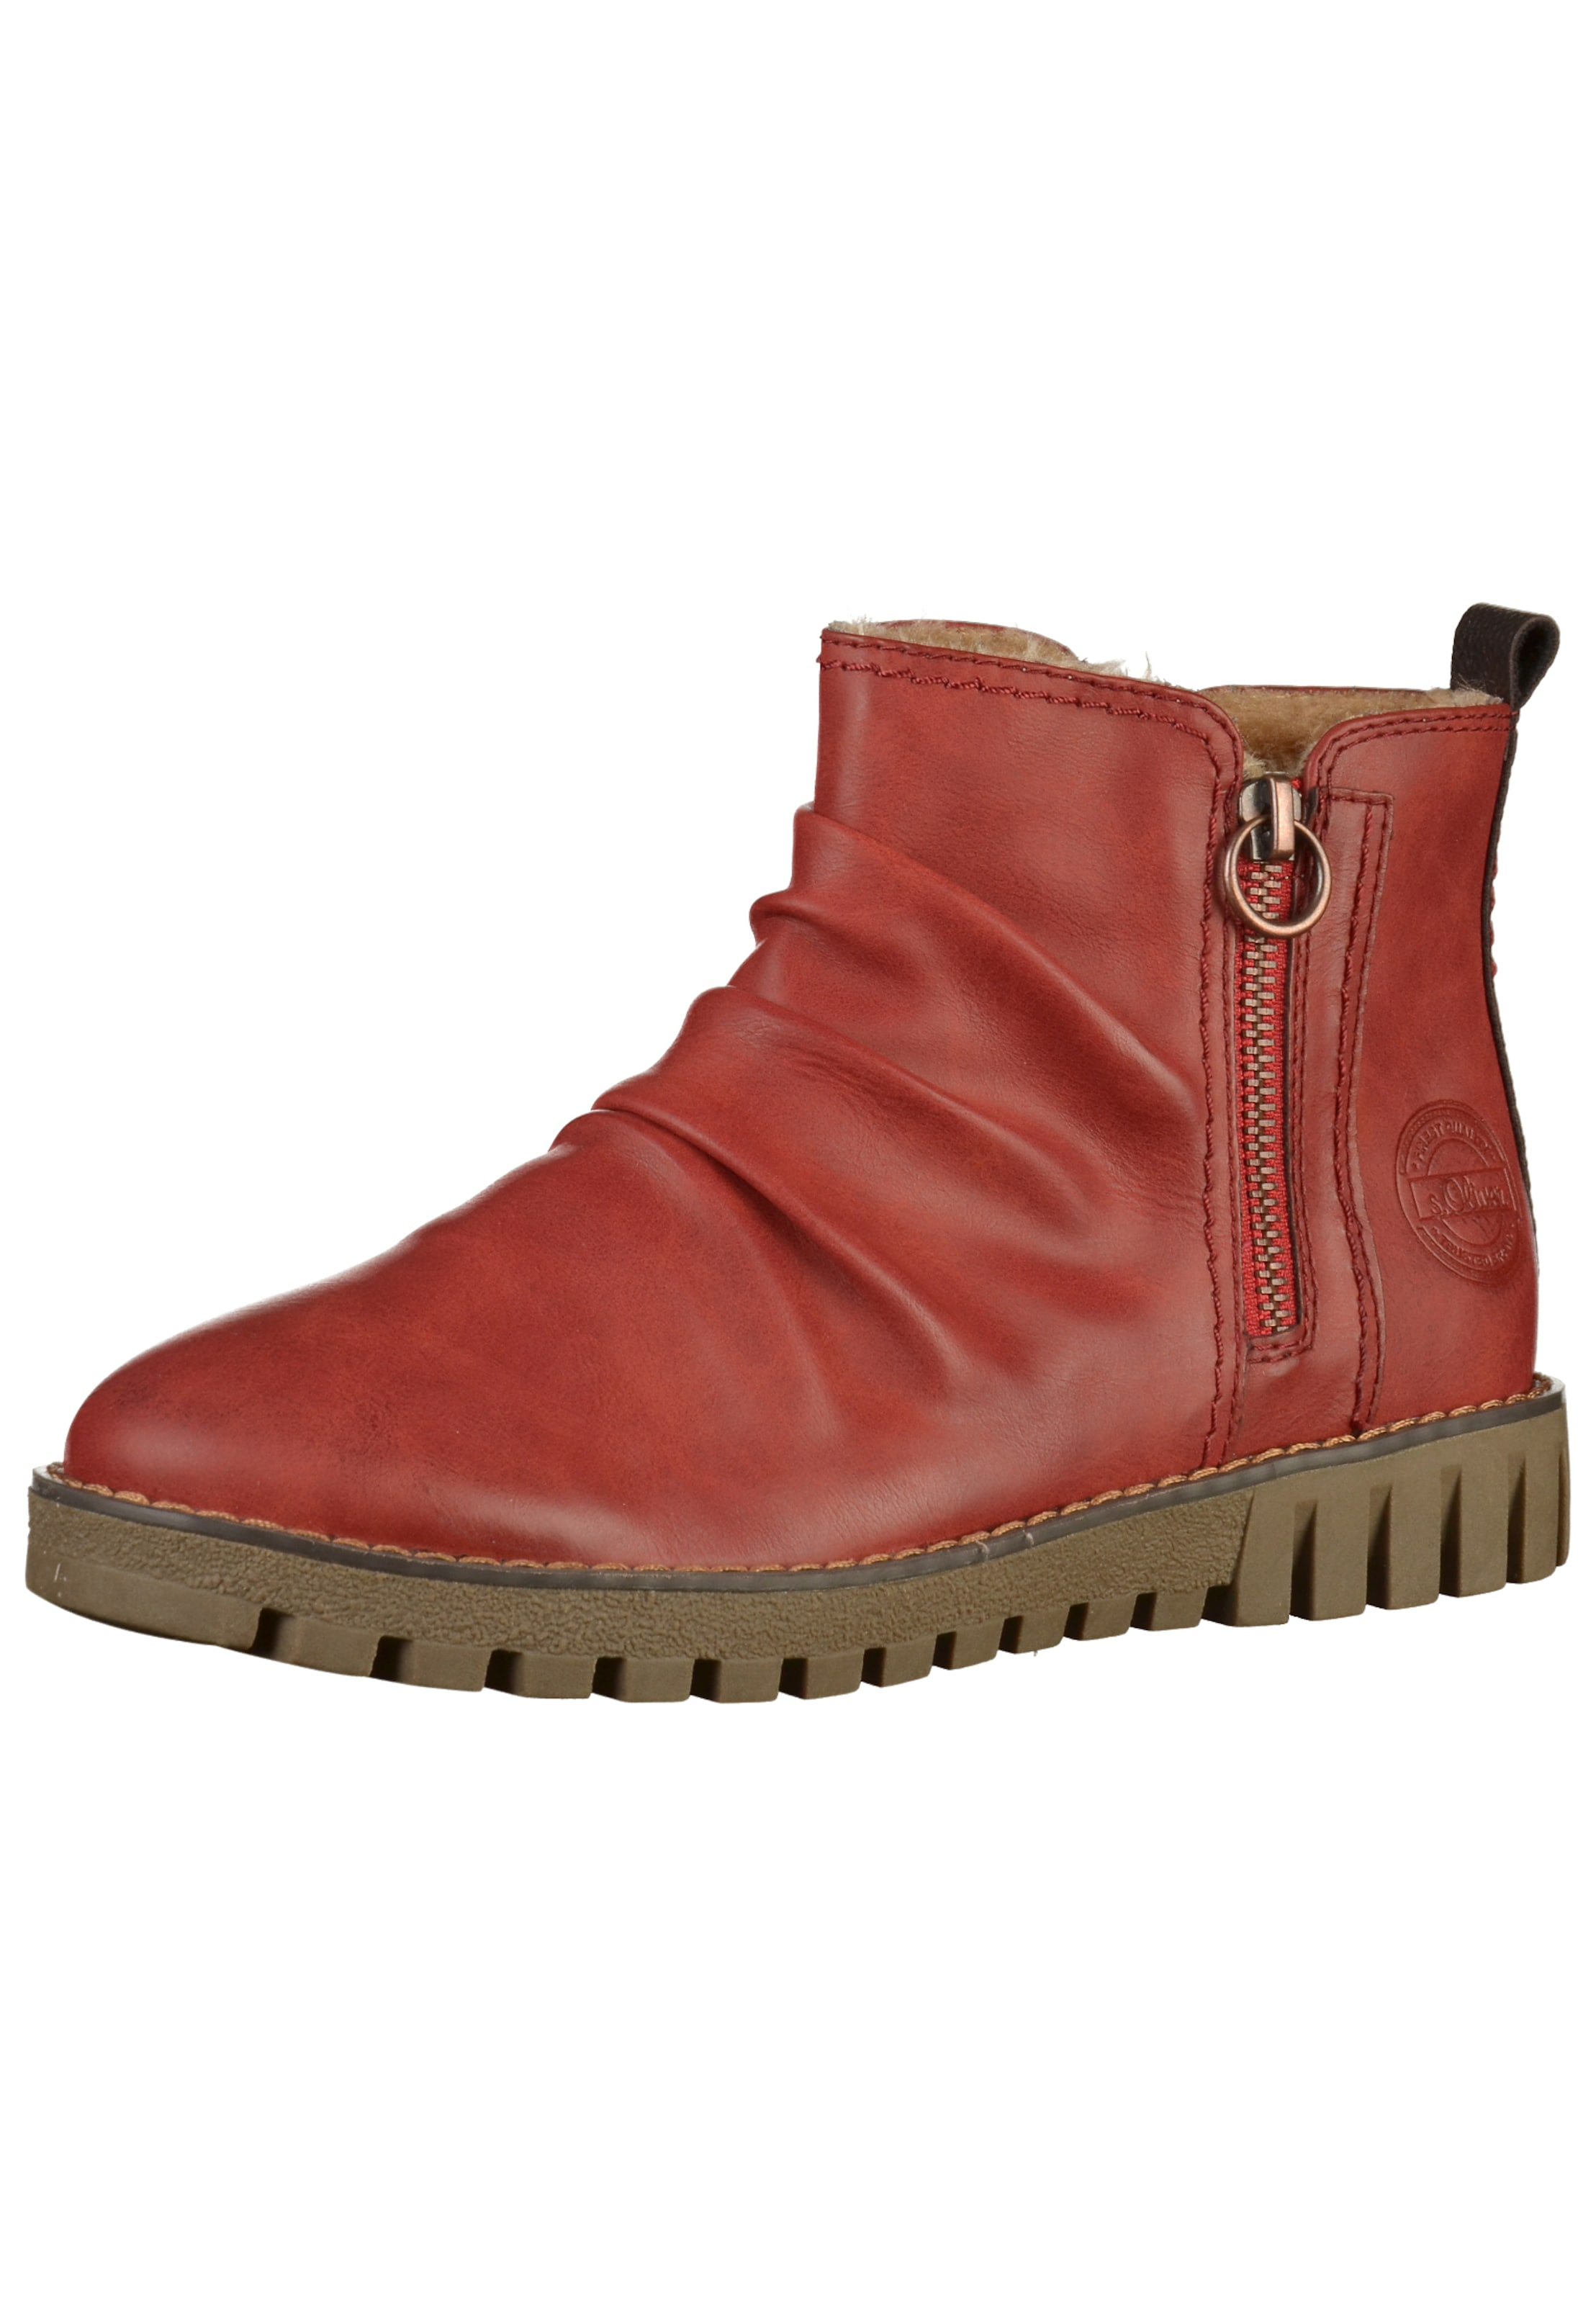 Red Stiefelette Rot oliver Label In S KJcT31lF